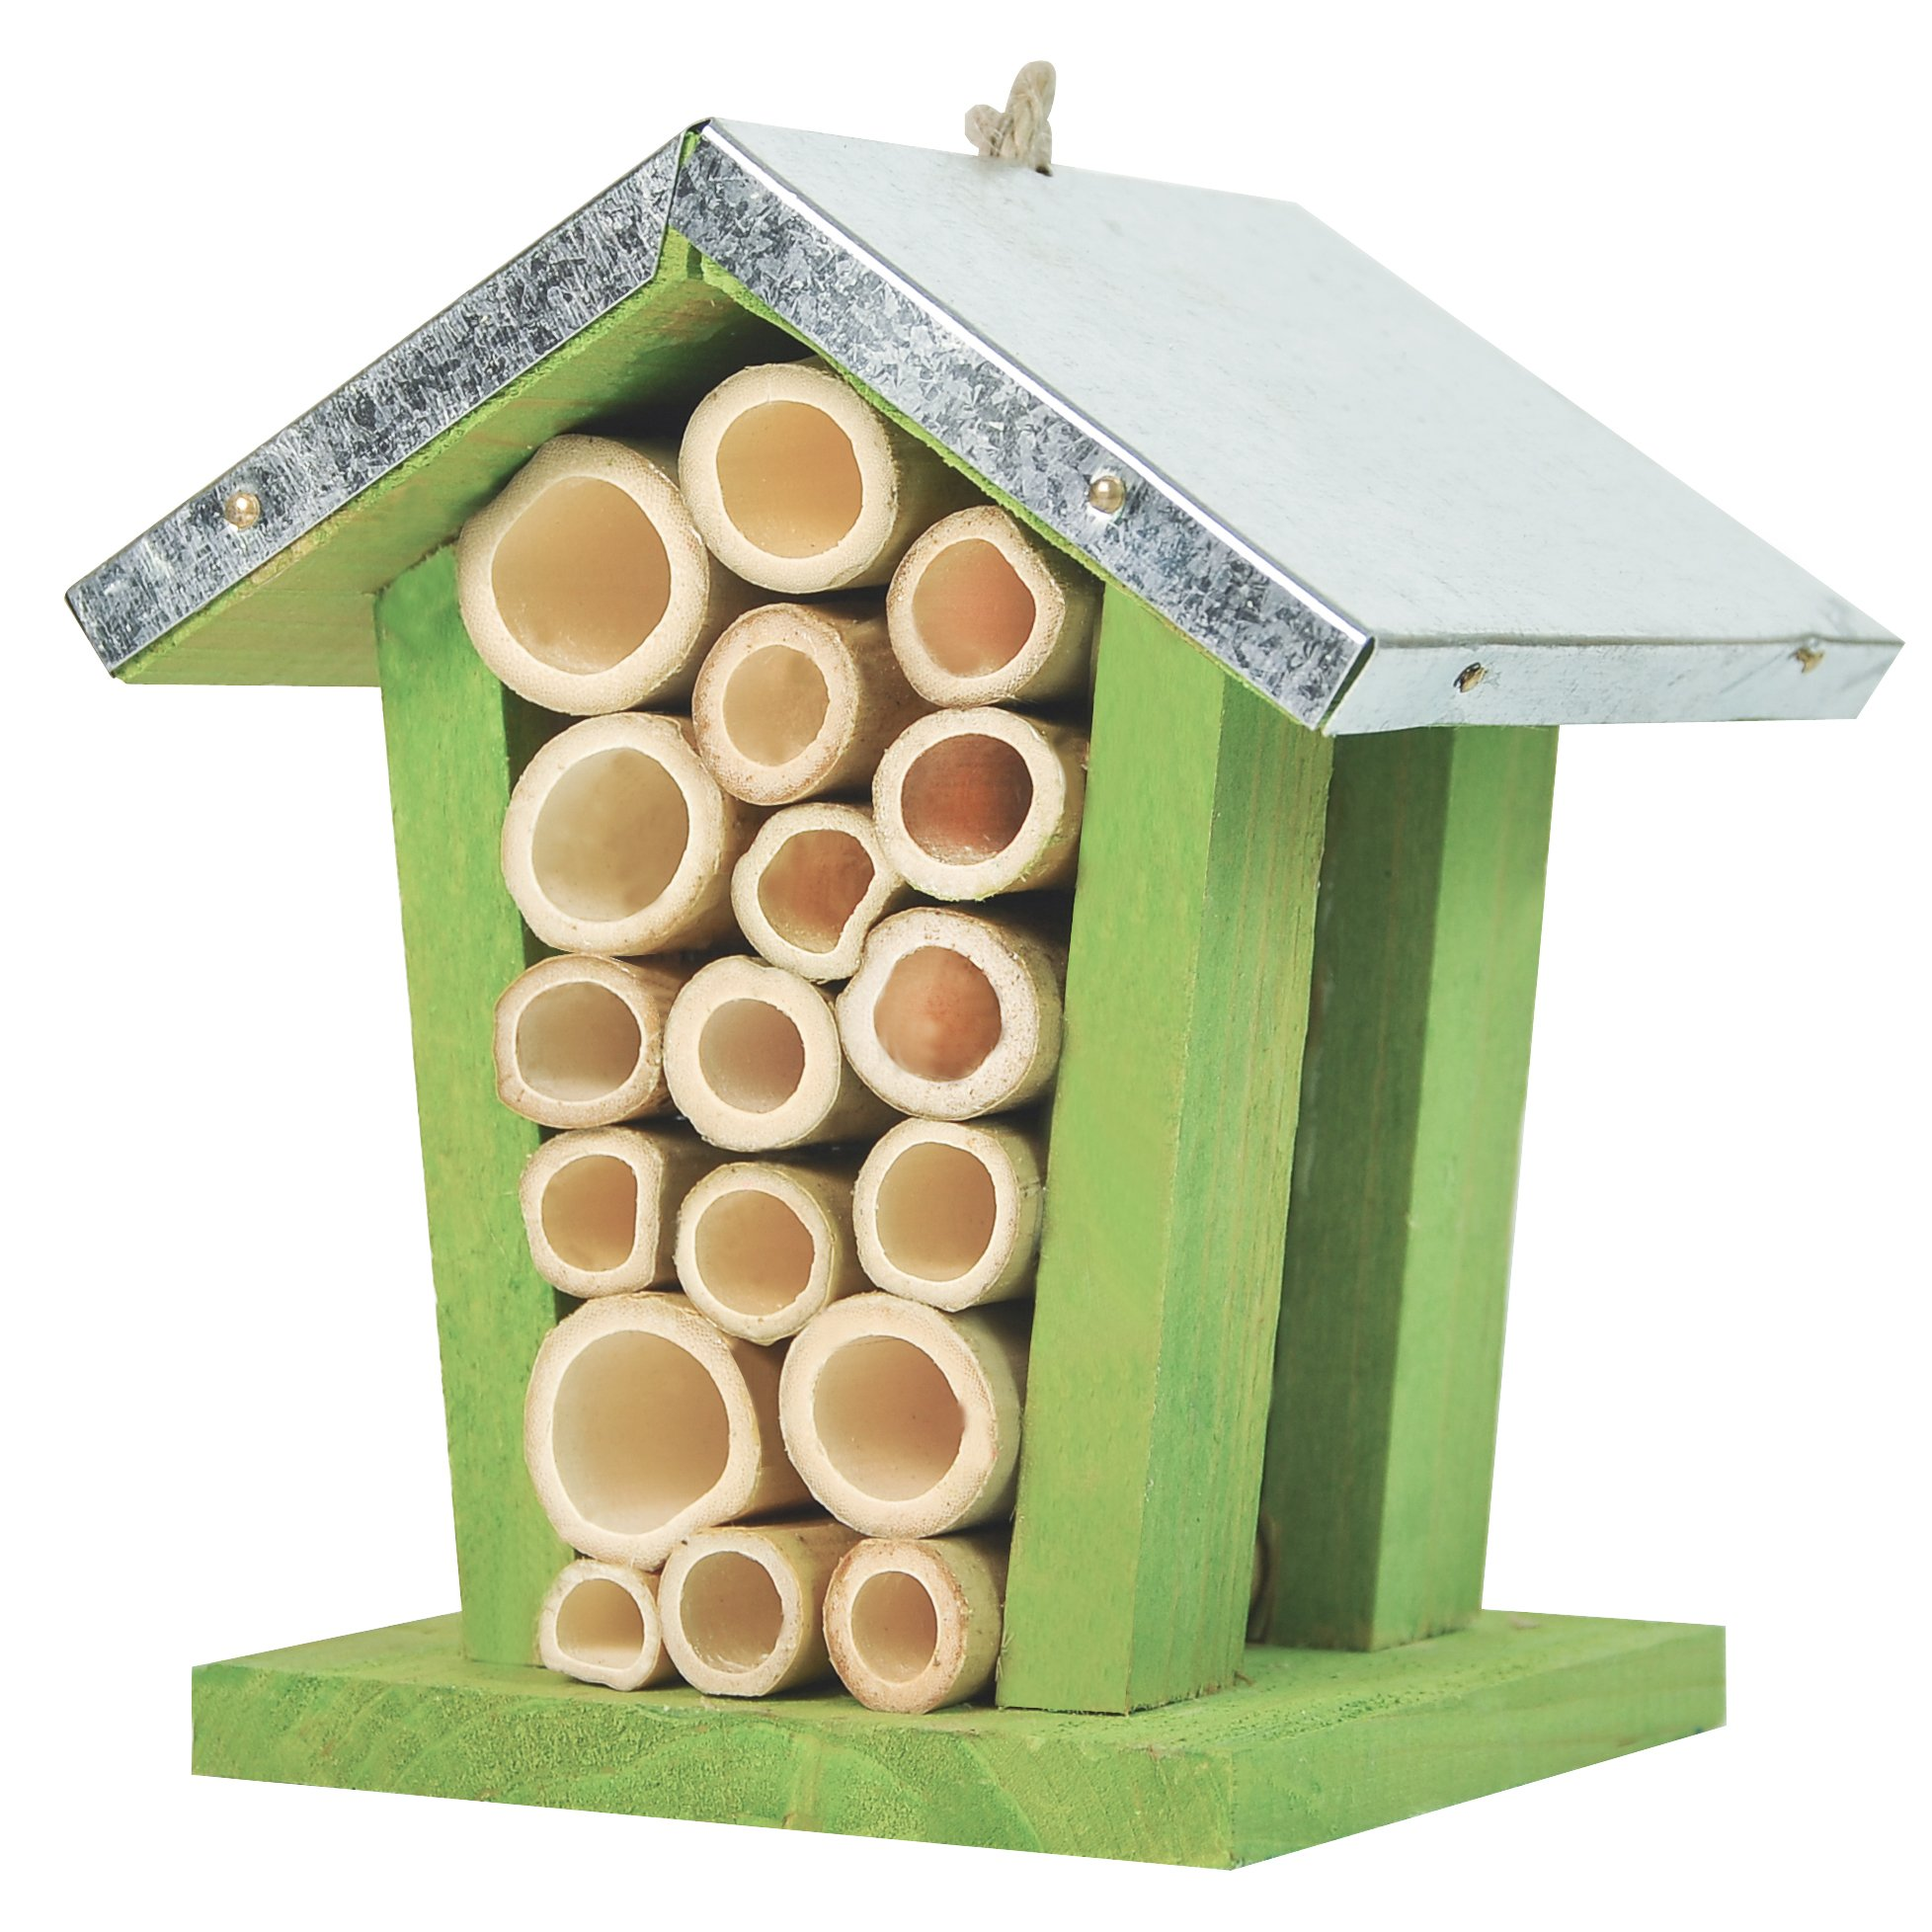 Gardirect Bee and Bug Home, Insect Hotel, 4.7'' x 4.7'' x 6.1'' by Gardirect